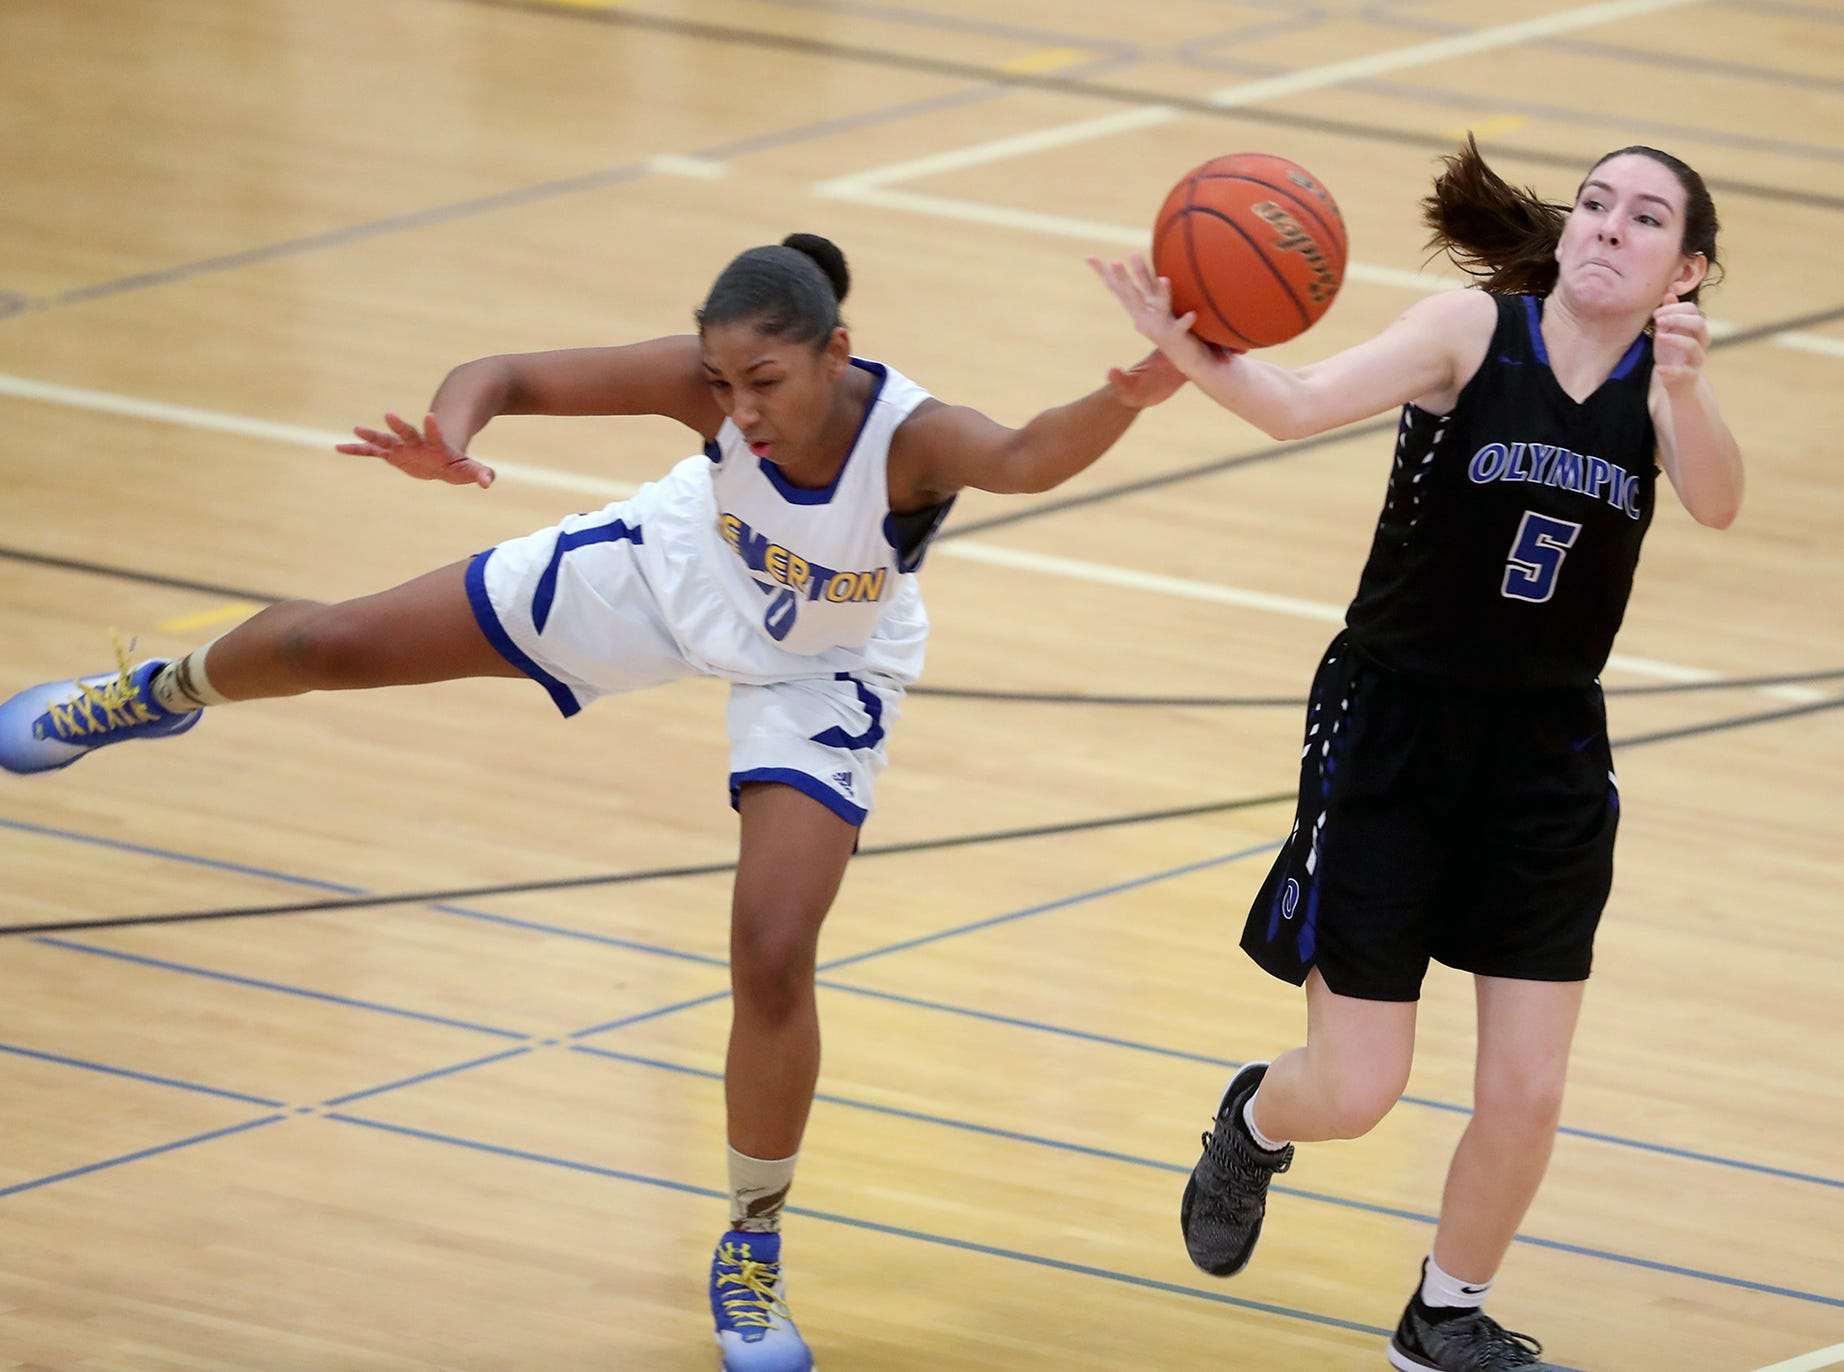 The Bremerton girls basketball team hosted Olympic on Tuesday, January, 15, 2019. Olympic won the game. Bremerton's Shauntay Levingston, left, tries to steal the pass to Olympic's Chloe Ashcraft.